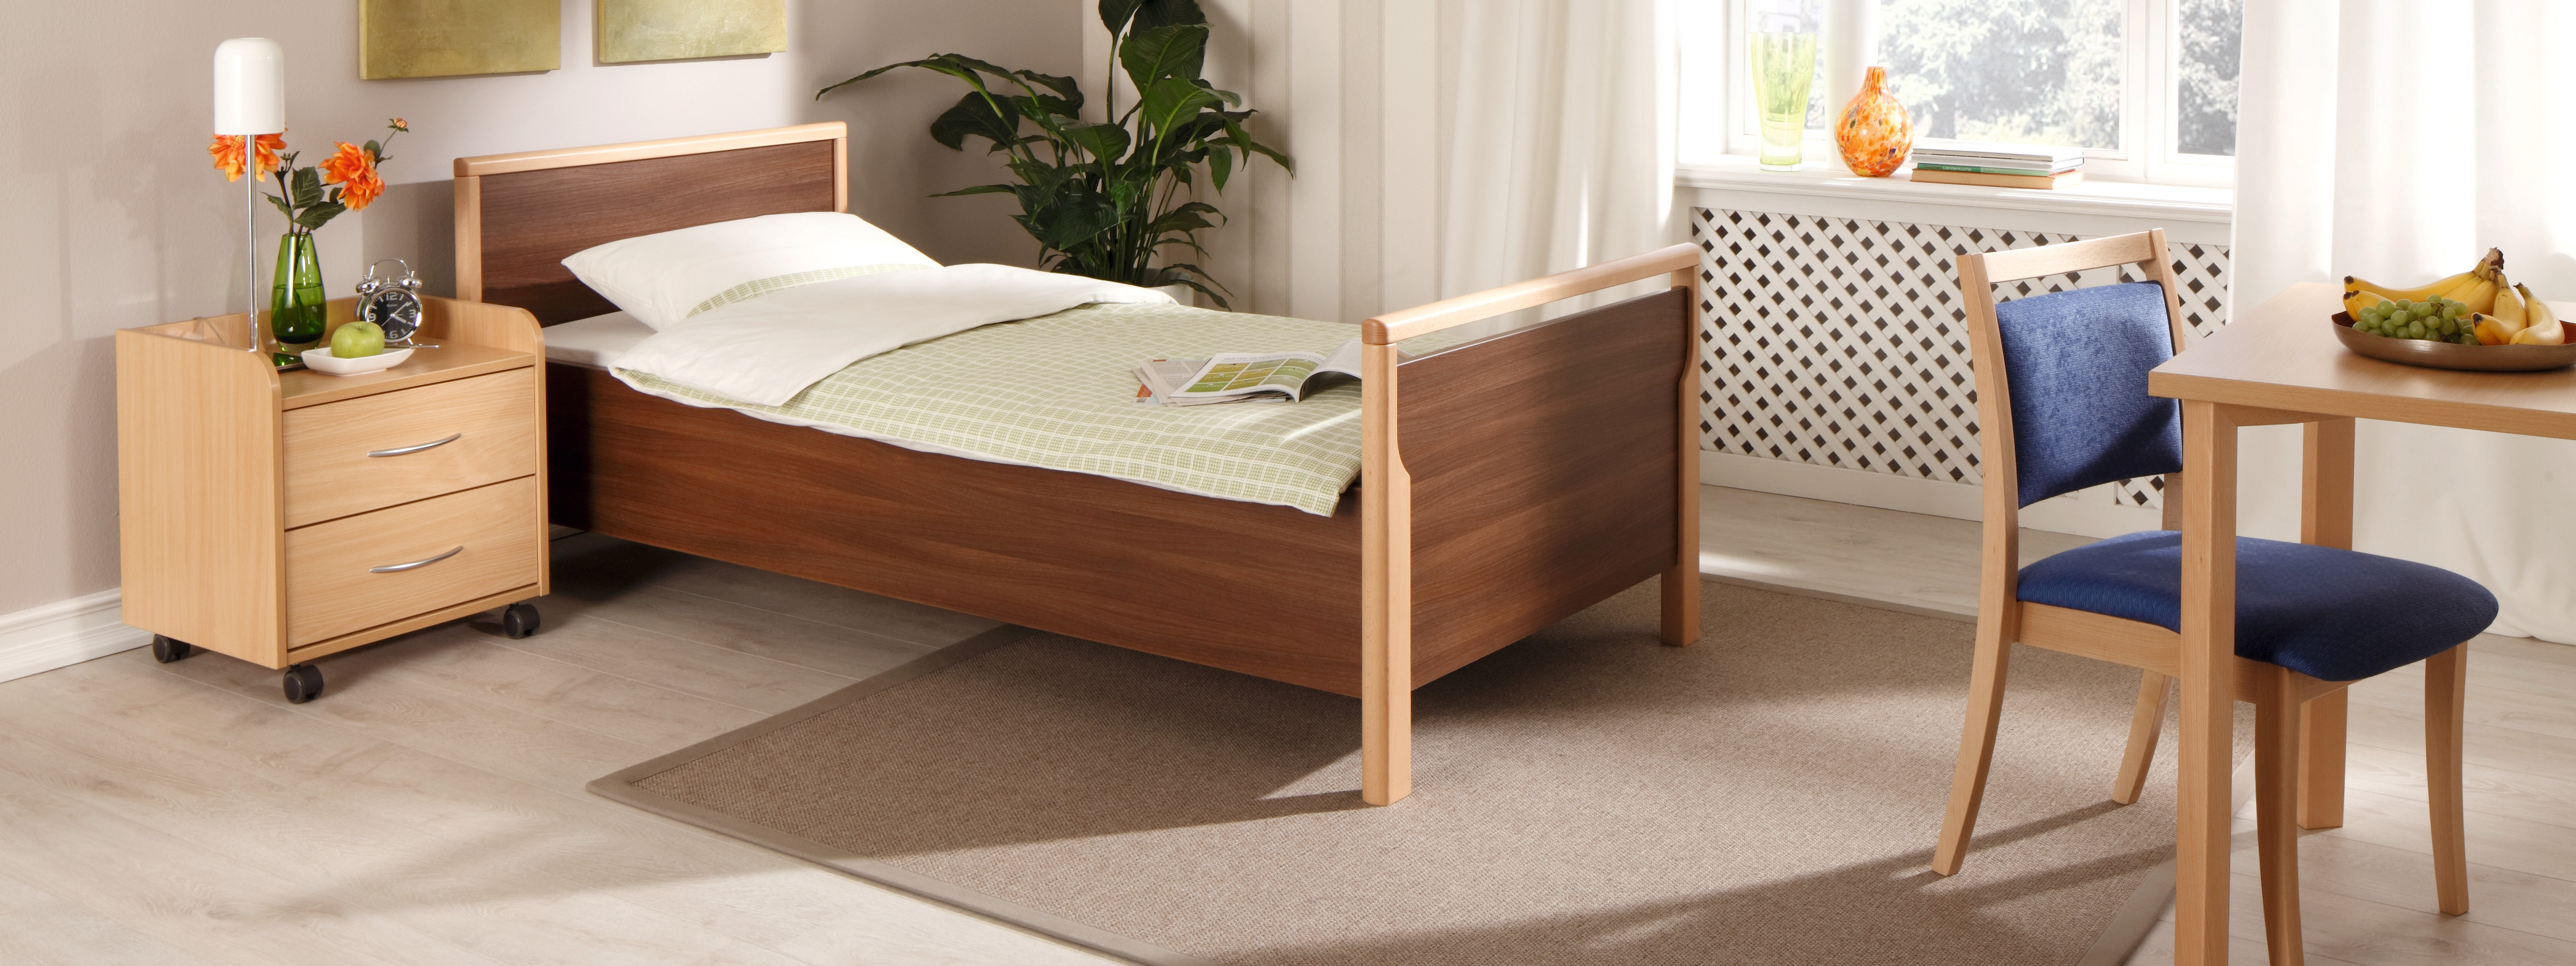 Combinable Relax bed frame